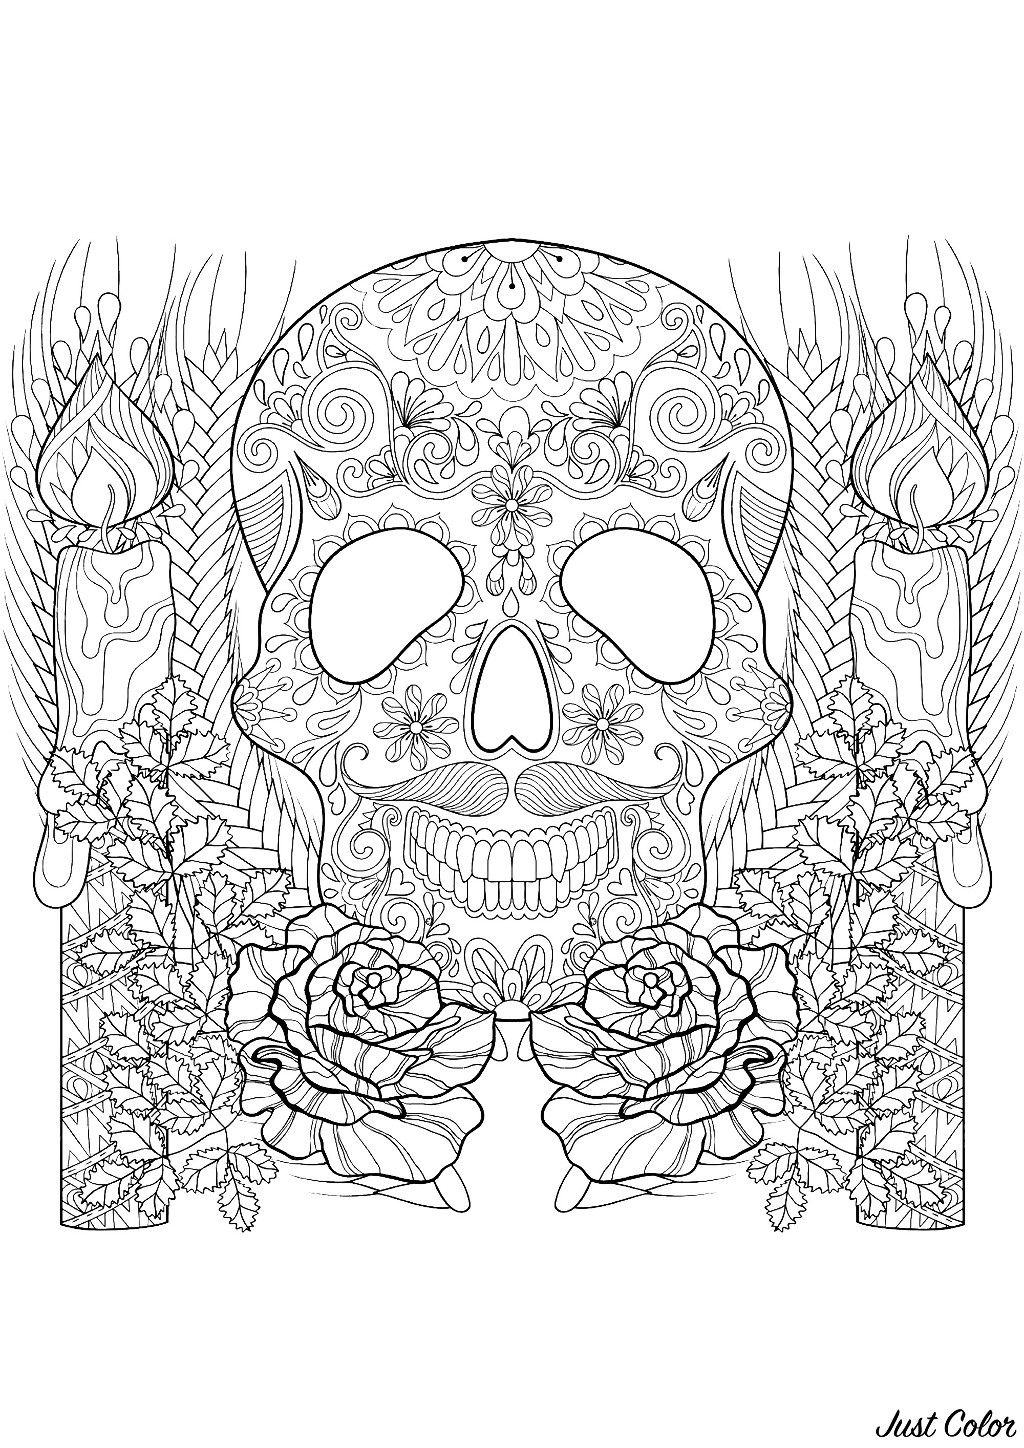 A beautiful Halloween coloring page consisting of a decorated skull surrounded by candles and flowers